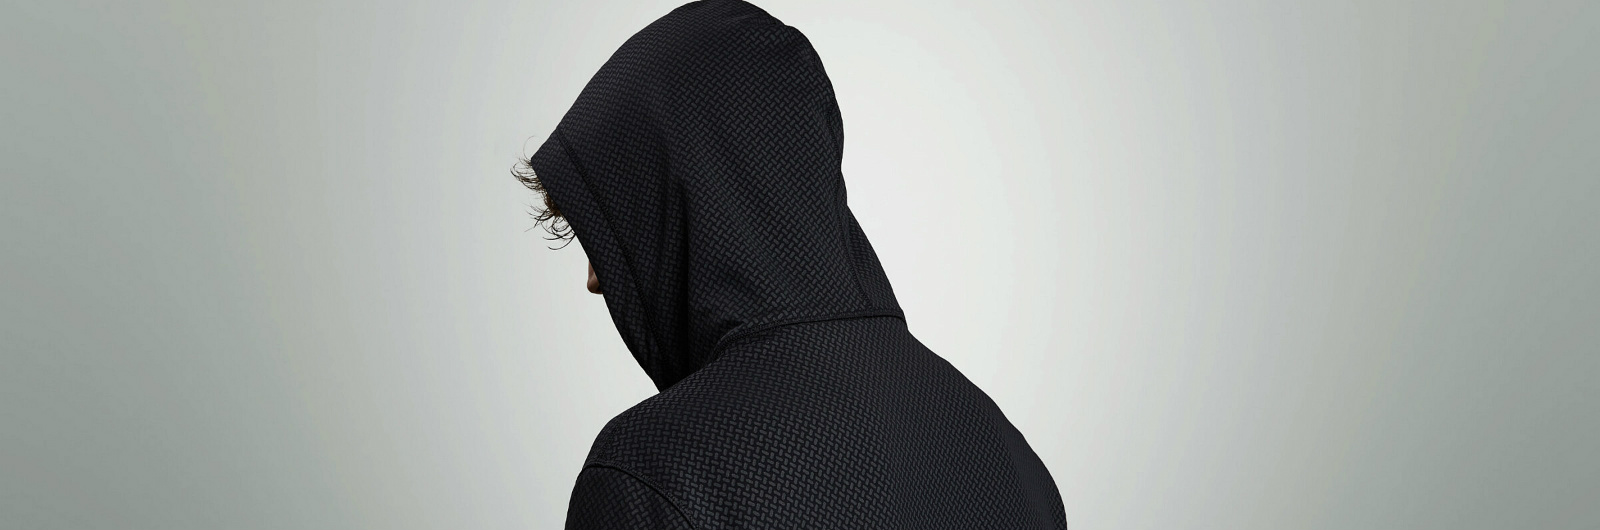 A New Hoodie Made With Jet Engine Technology